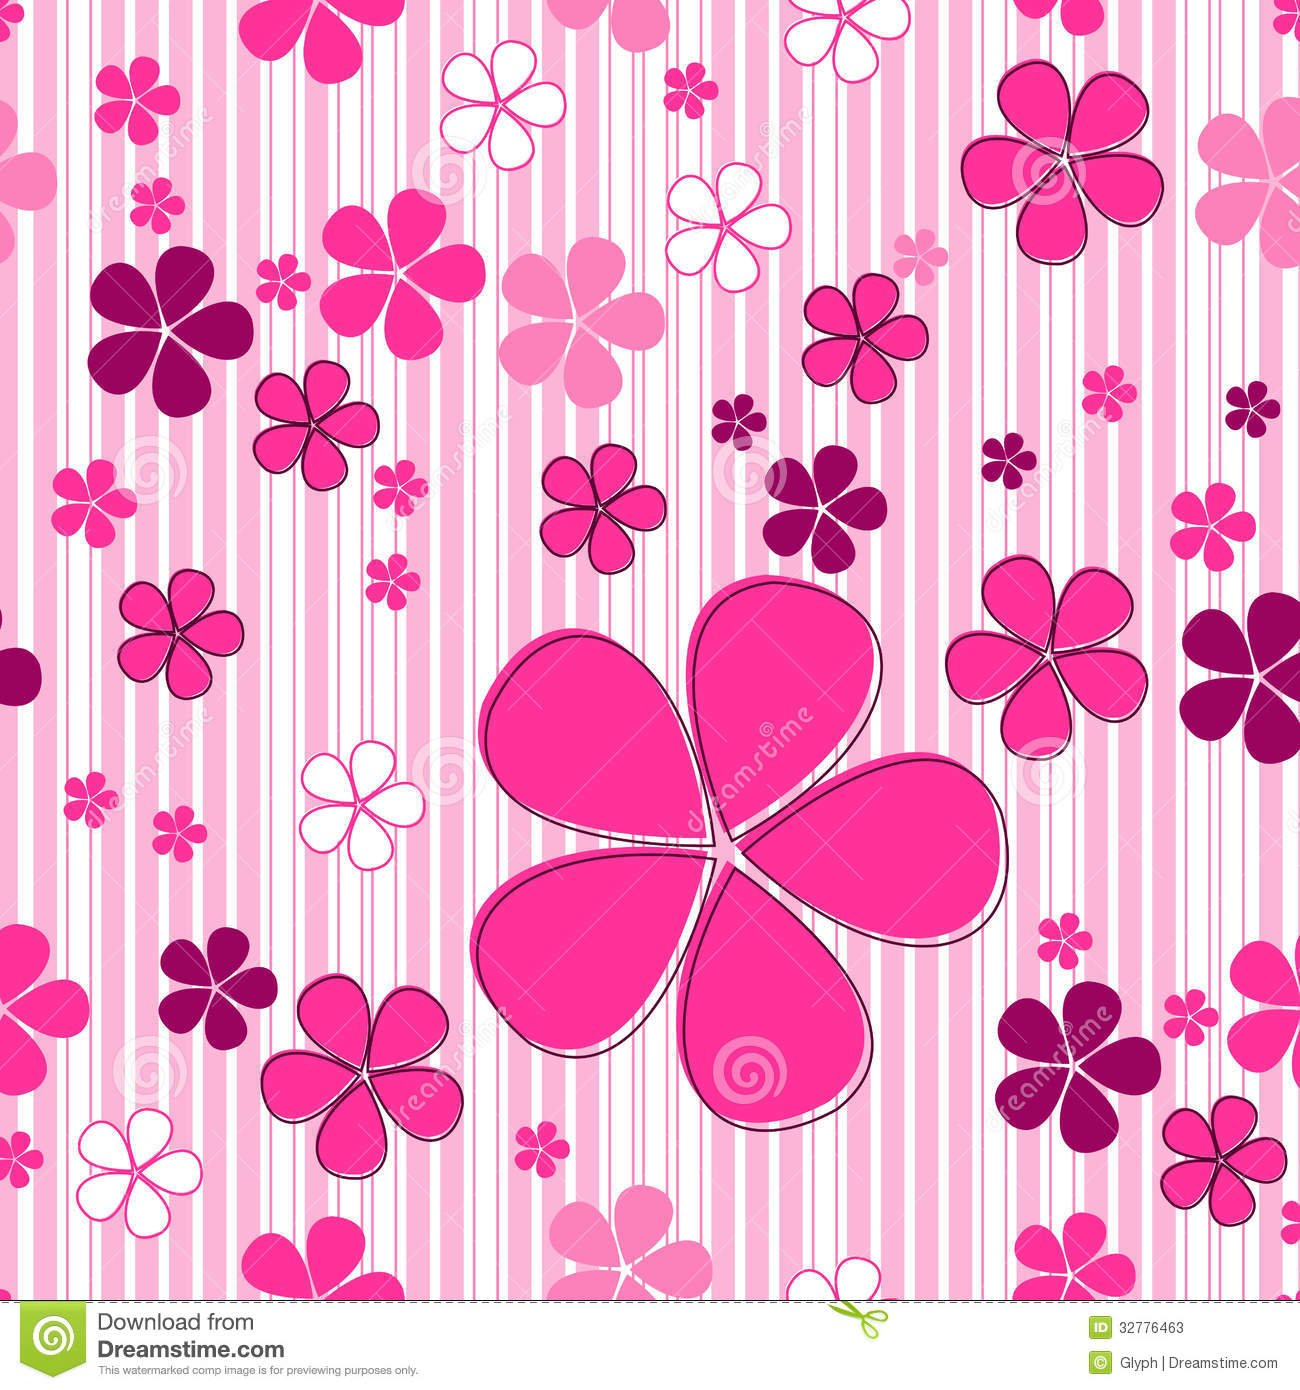 Cute Flower Background Wallpapersafari